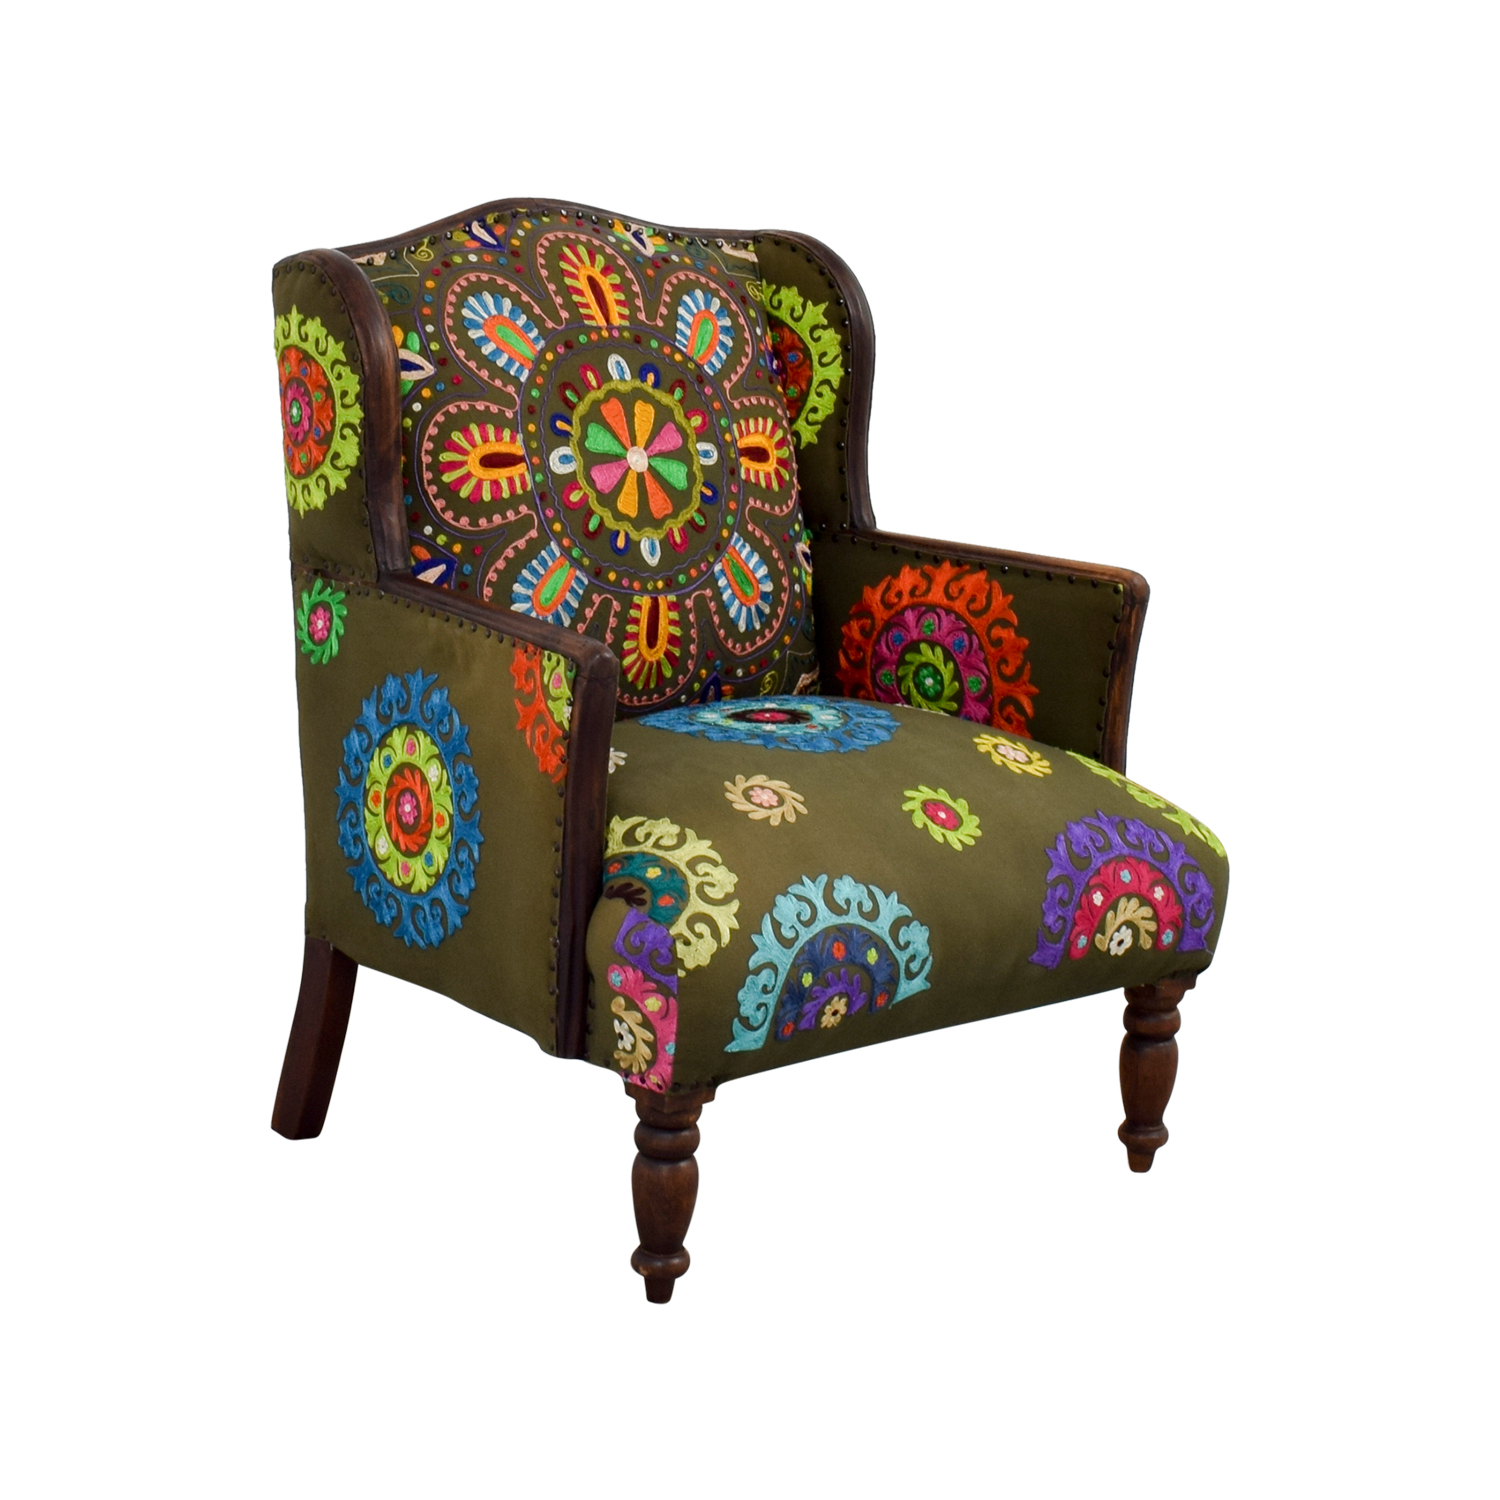 88 off melange home melange home accent chair chairs - Essential accent furniture for your home ...